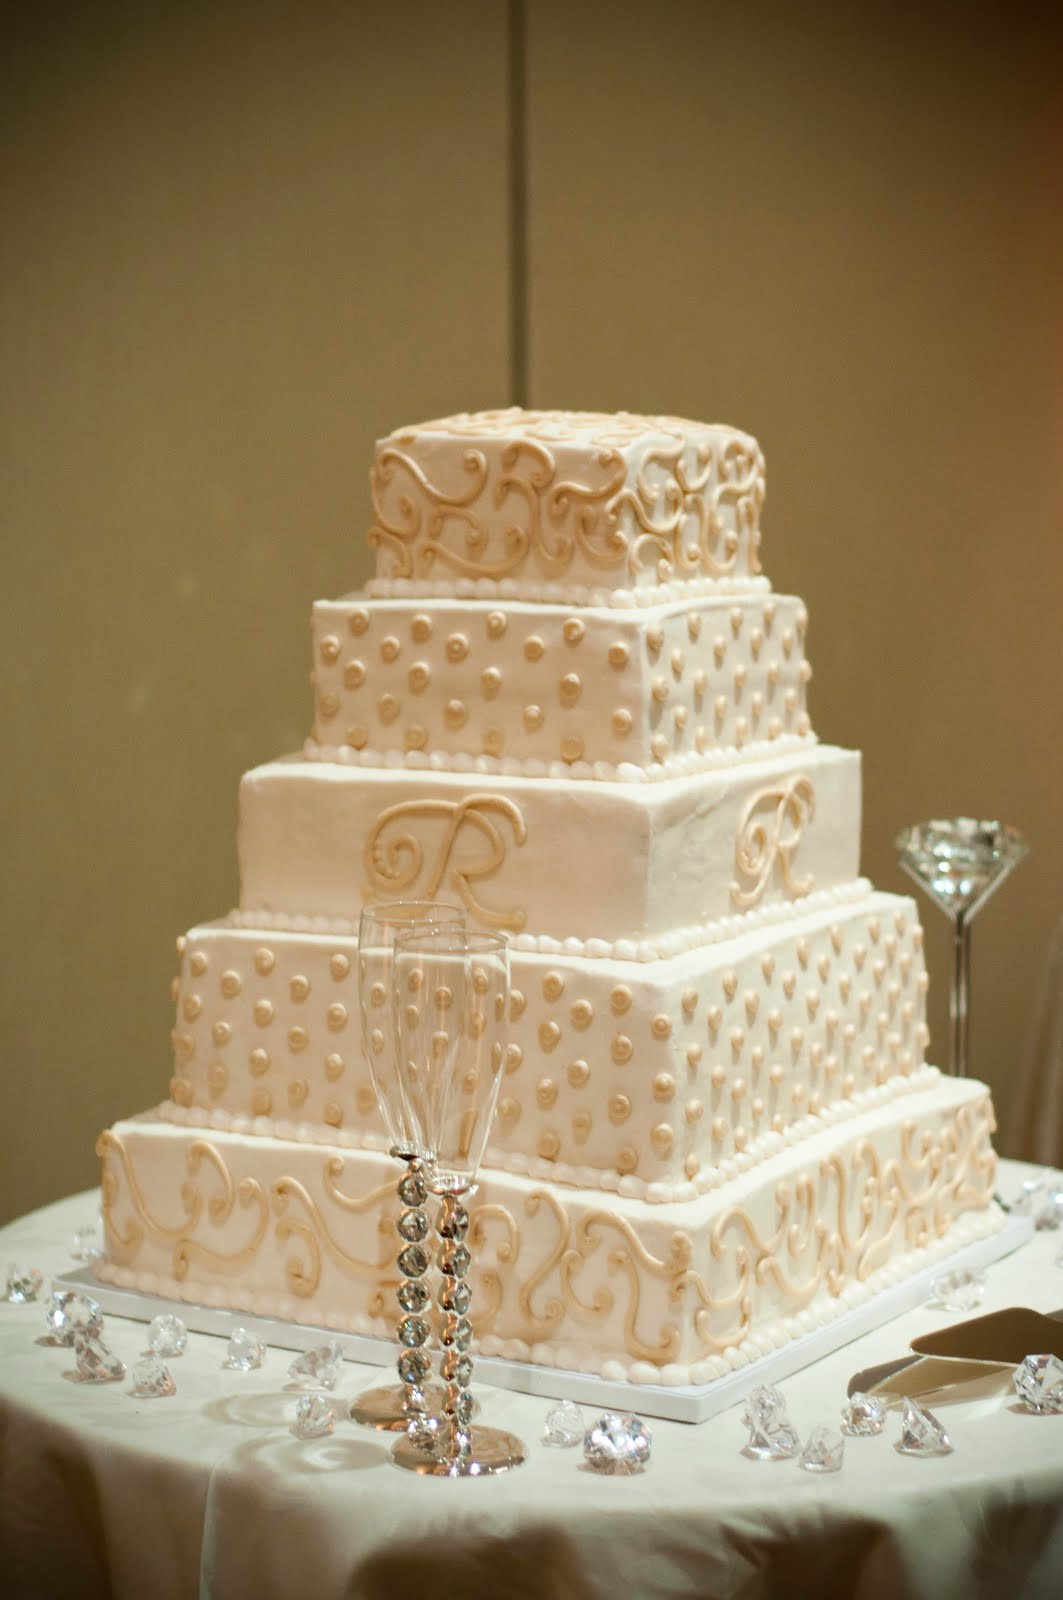 Champagne Color Wedding Cakes  Champagne colored wedding cakes idea in 2017